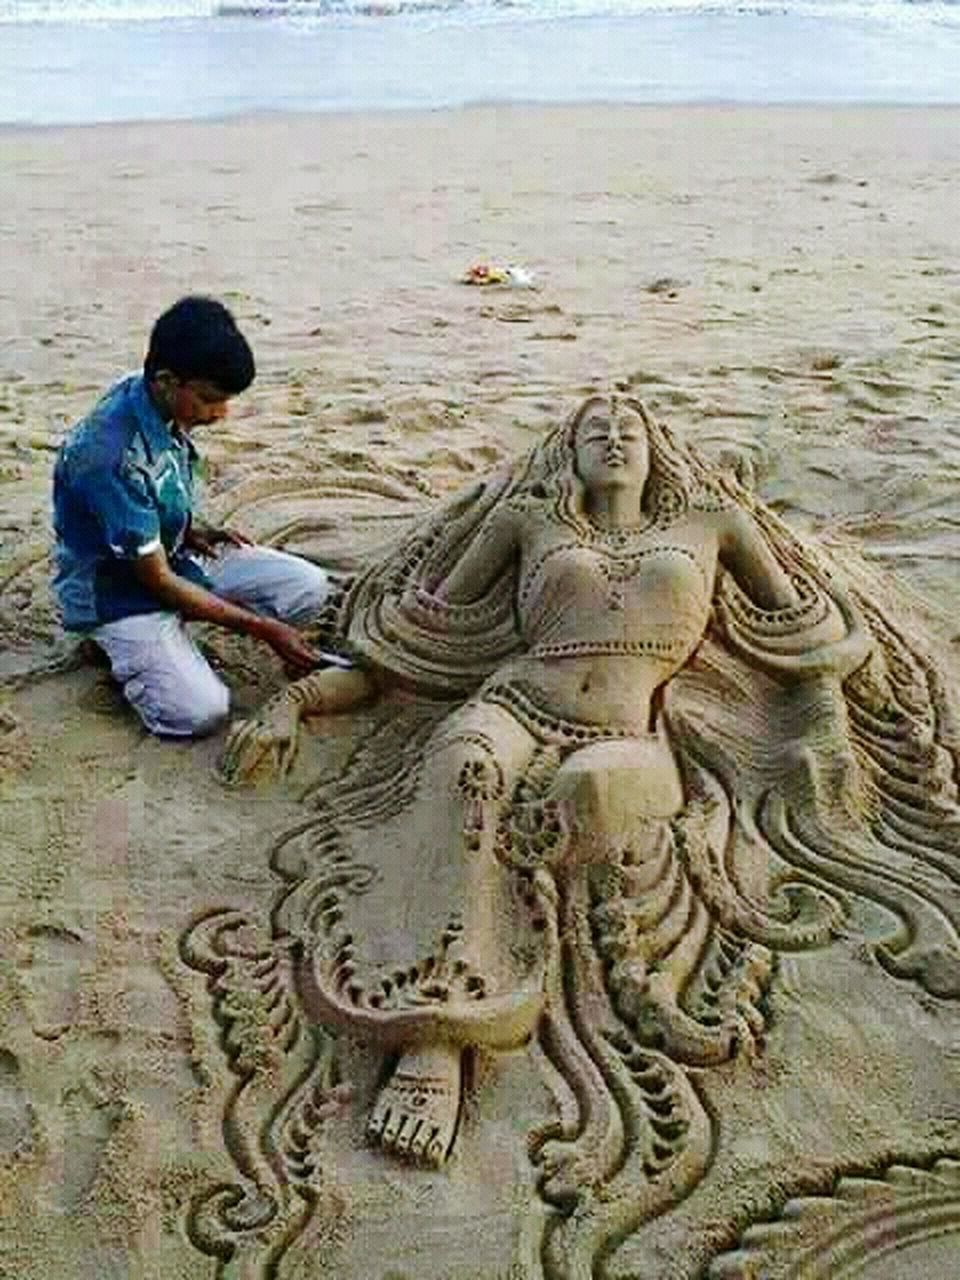 statue, sand, sculpture, beach, day, sitting, one person, outdoors, people, adult